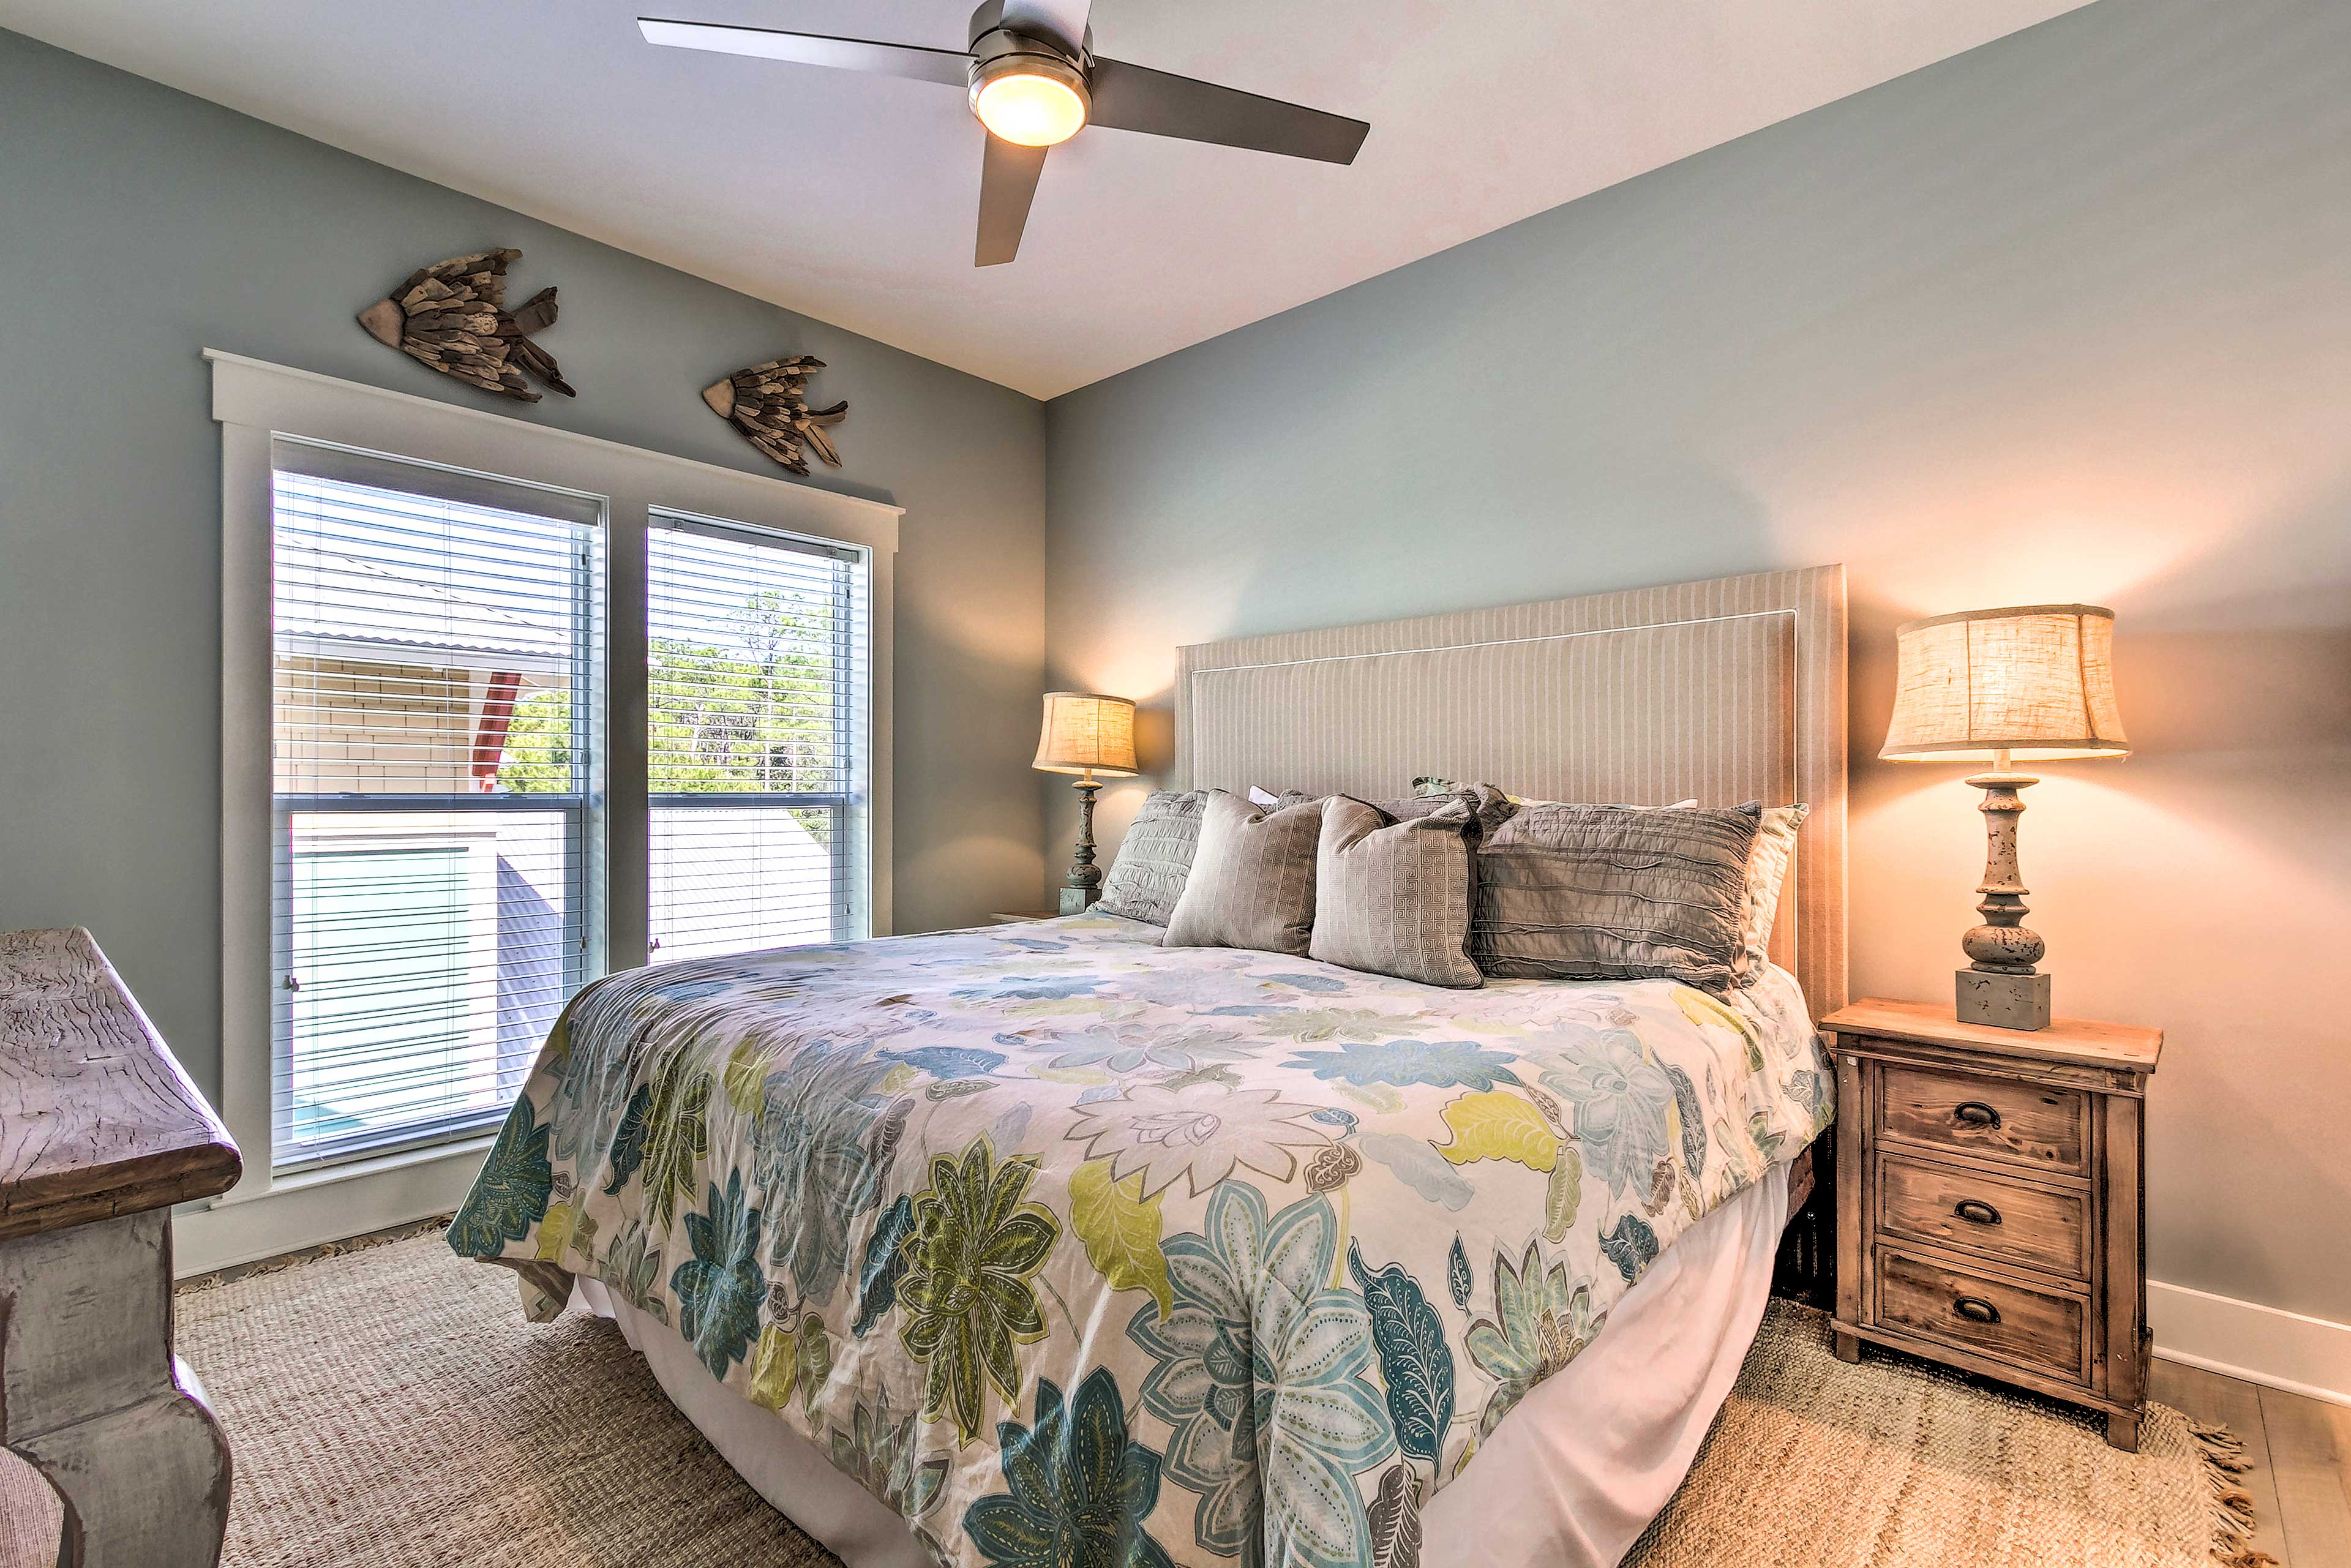 The second master bedroom offers ceiling fans & A/C to keep you cool.